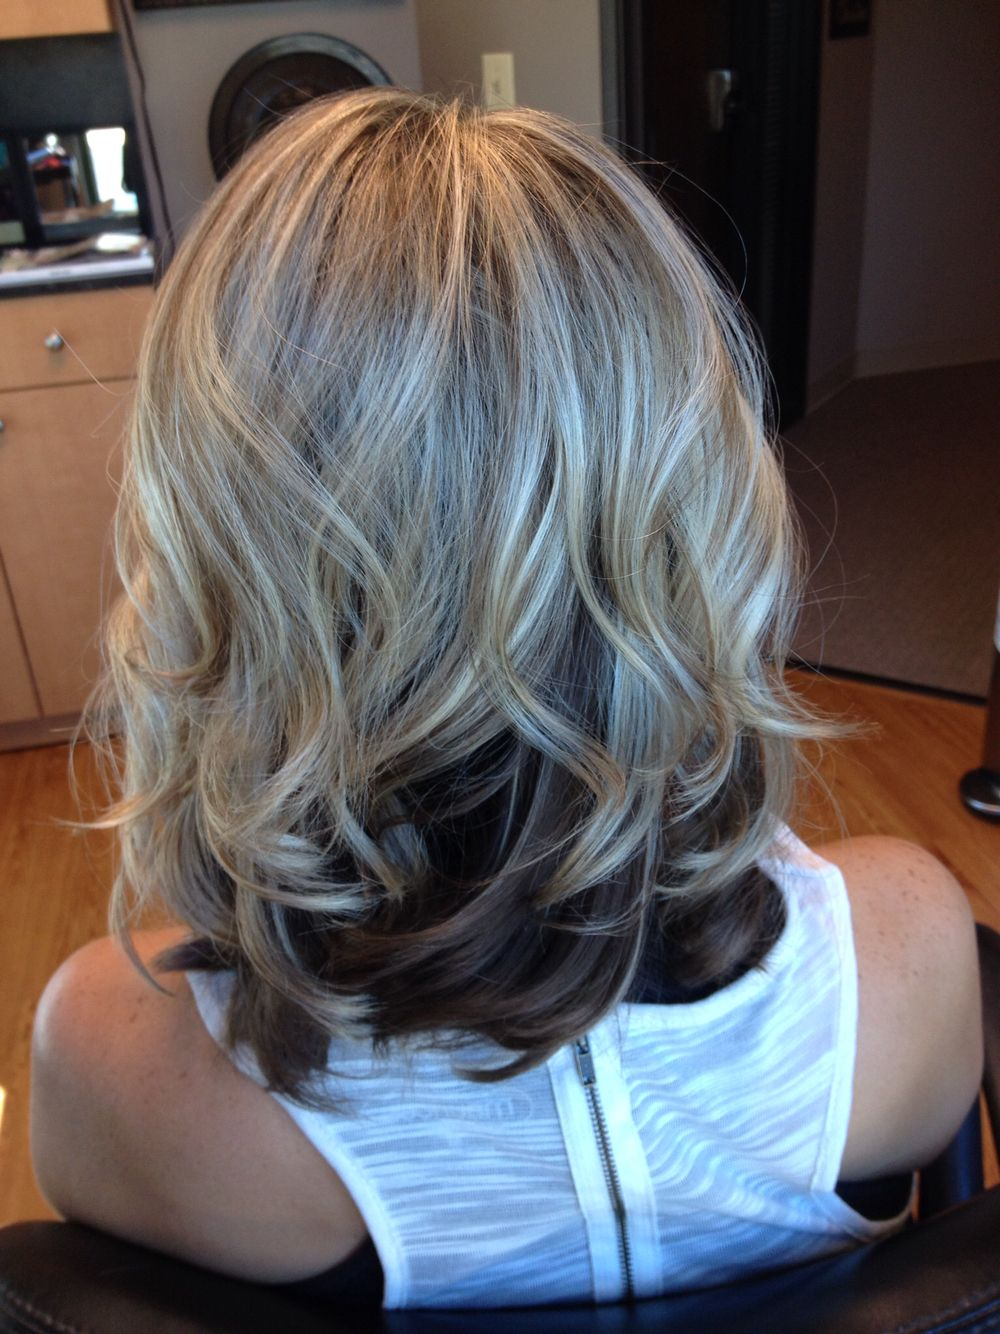 Blonde top, dark underneath | Hair by Melissa Lobaito | Pinterest ...